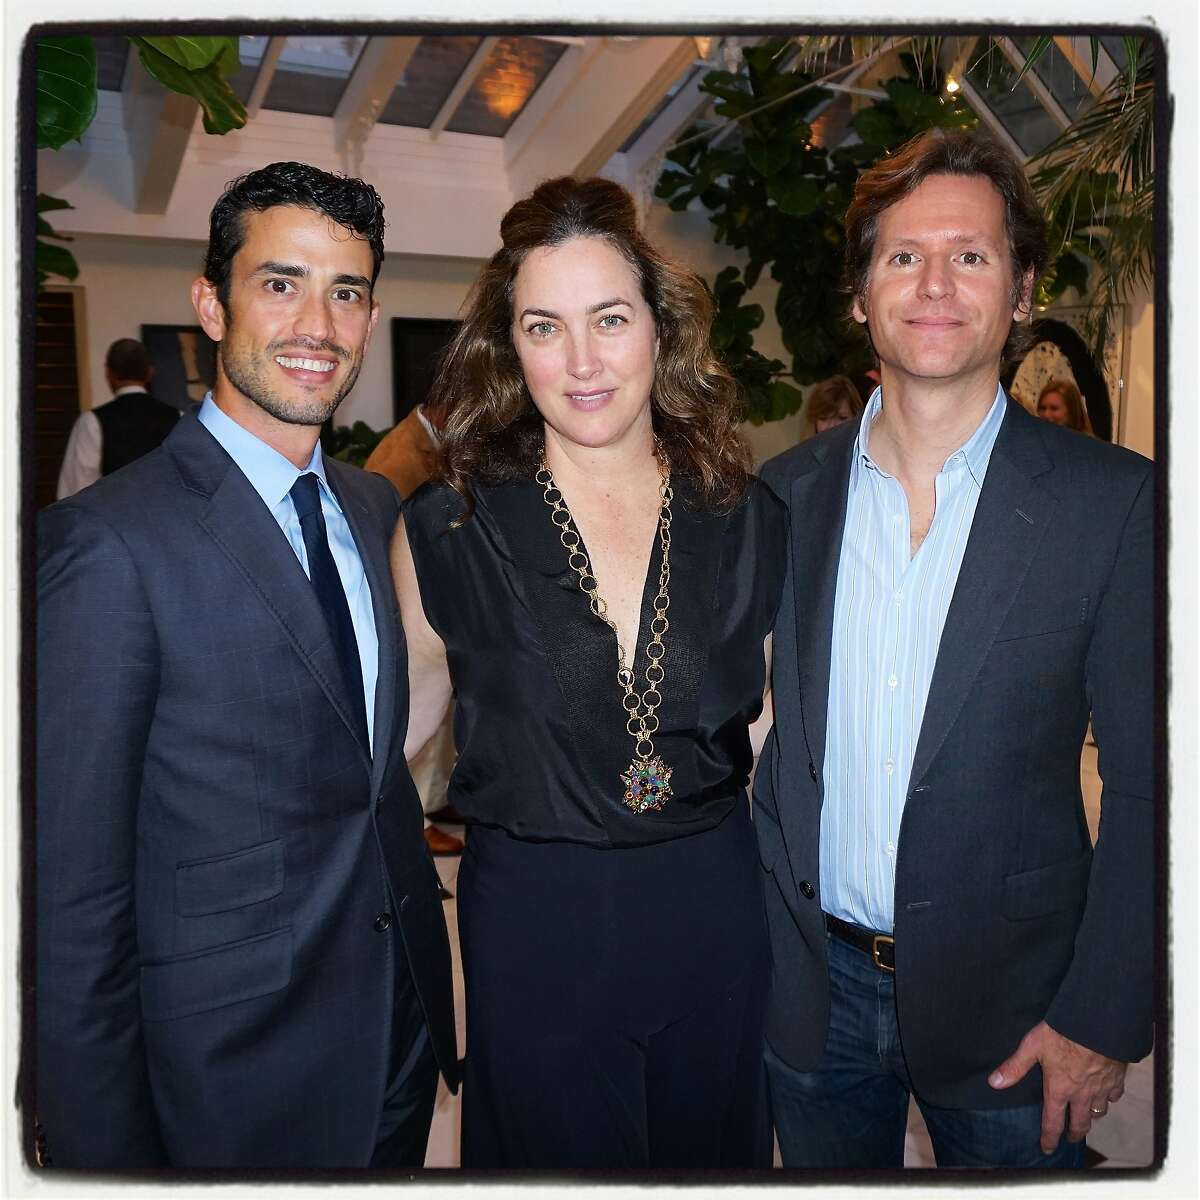 Tiffany SF GM Federico Sandino (left) with Alexis Traina and her husband, IfOnly founder Trevor Traina at a launch for the new luxe CT60 Tiffany watch collection. Oct 2015.